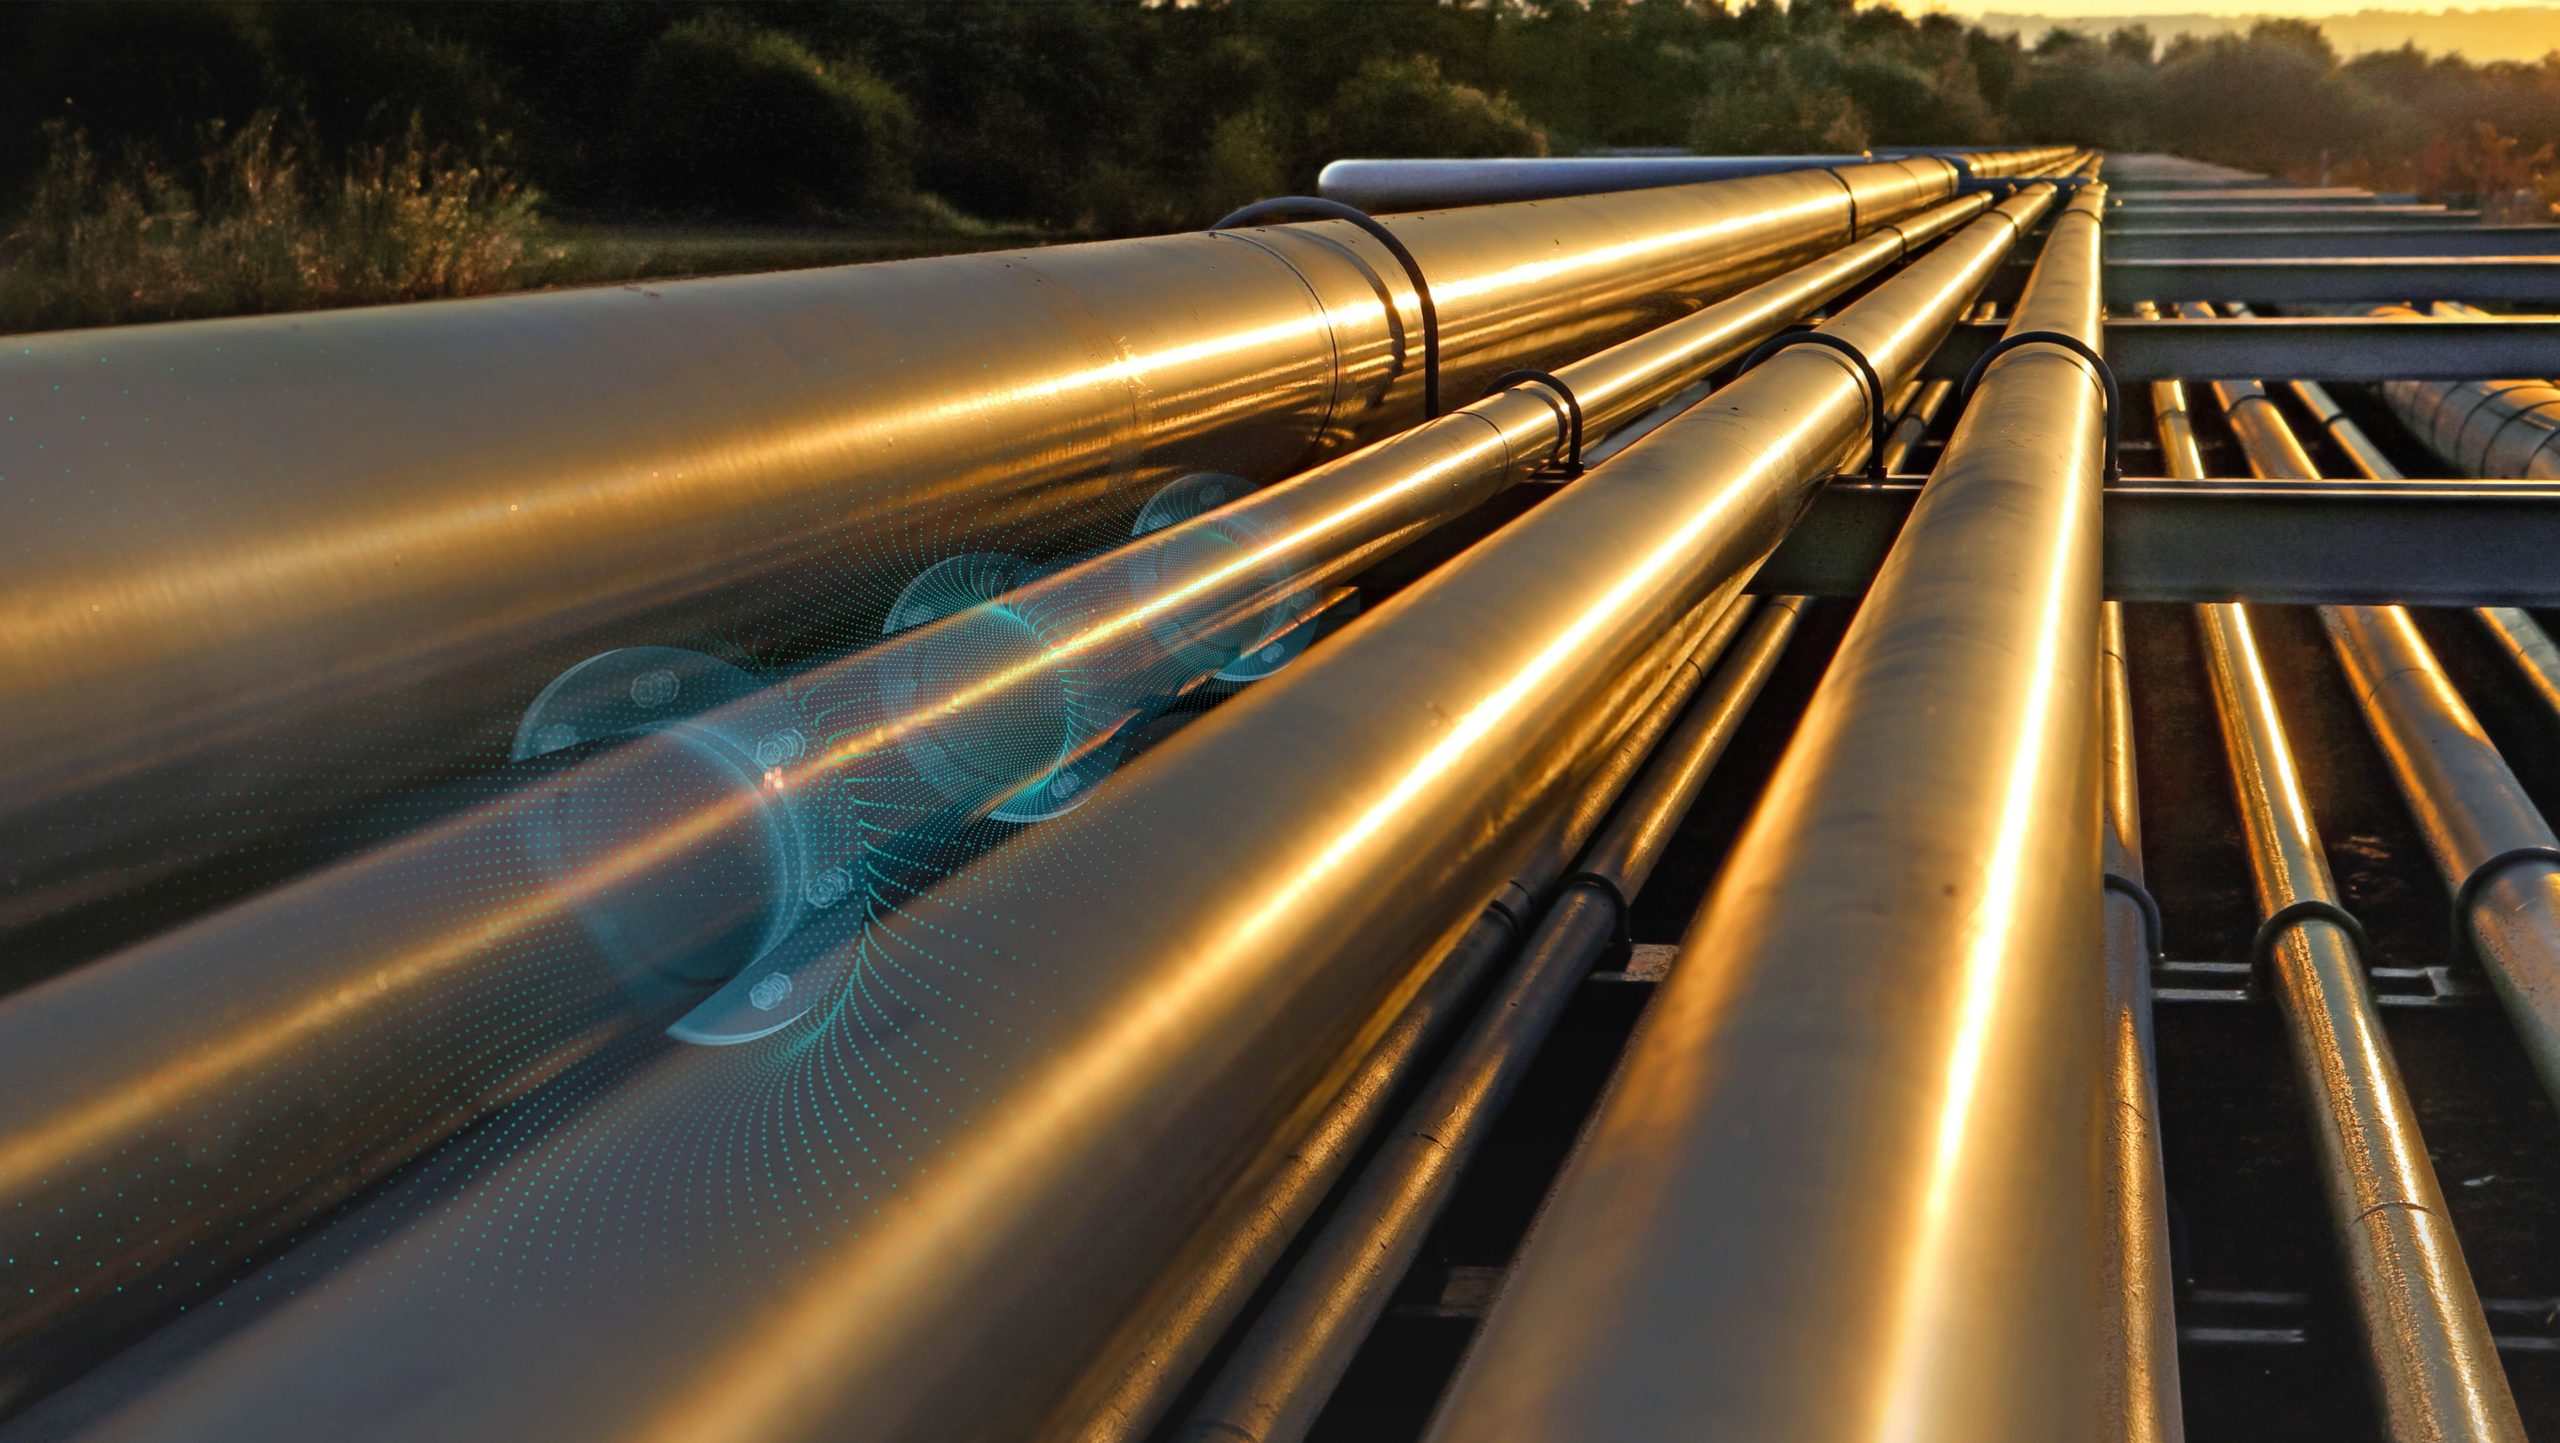 Hands-On Tutorial On Machine Learning Pipelines With Scikit-Learn